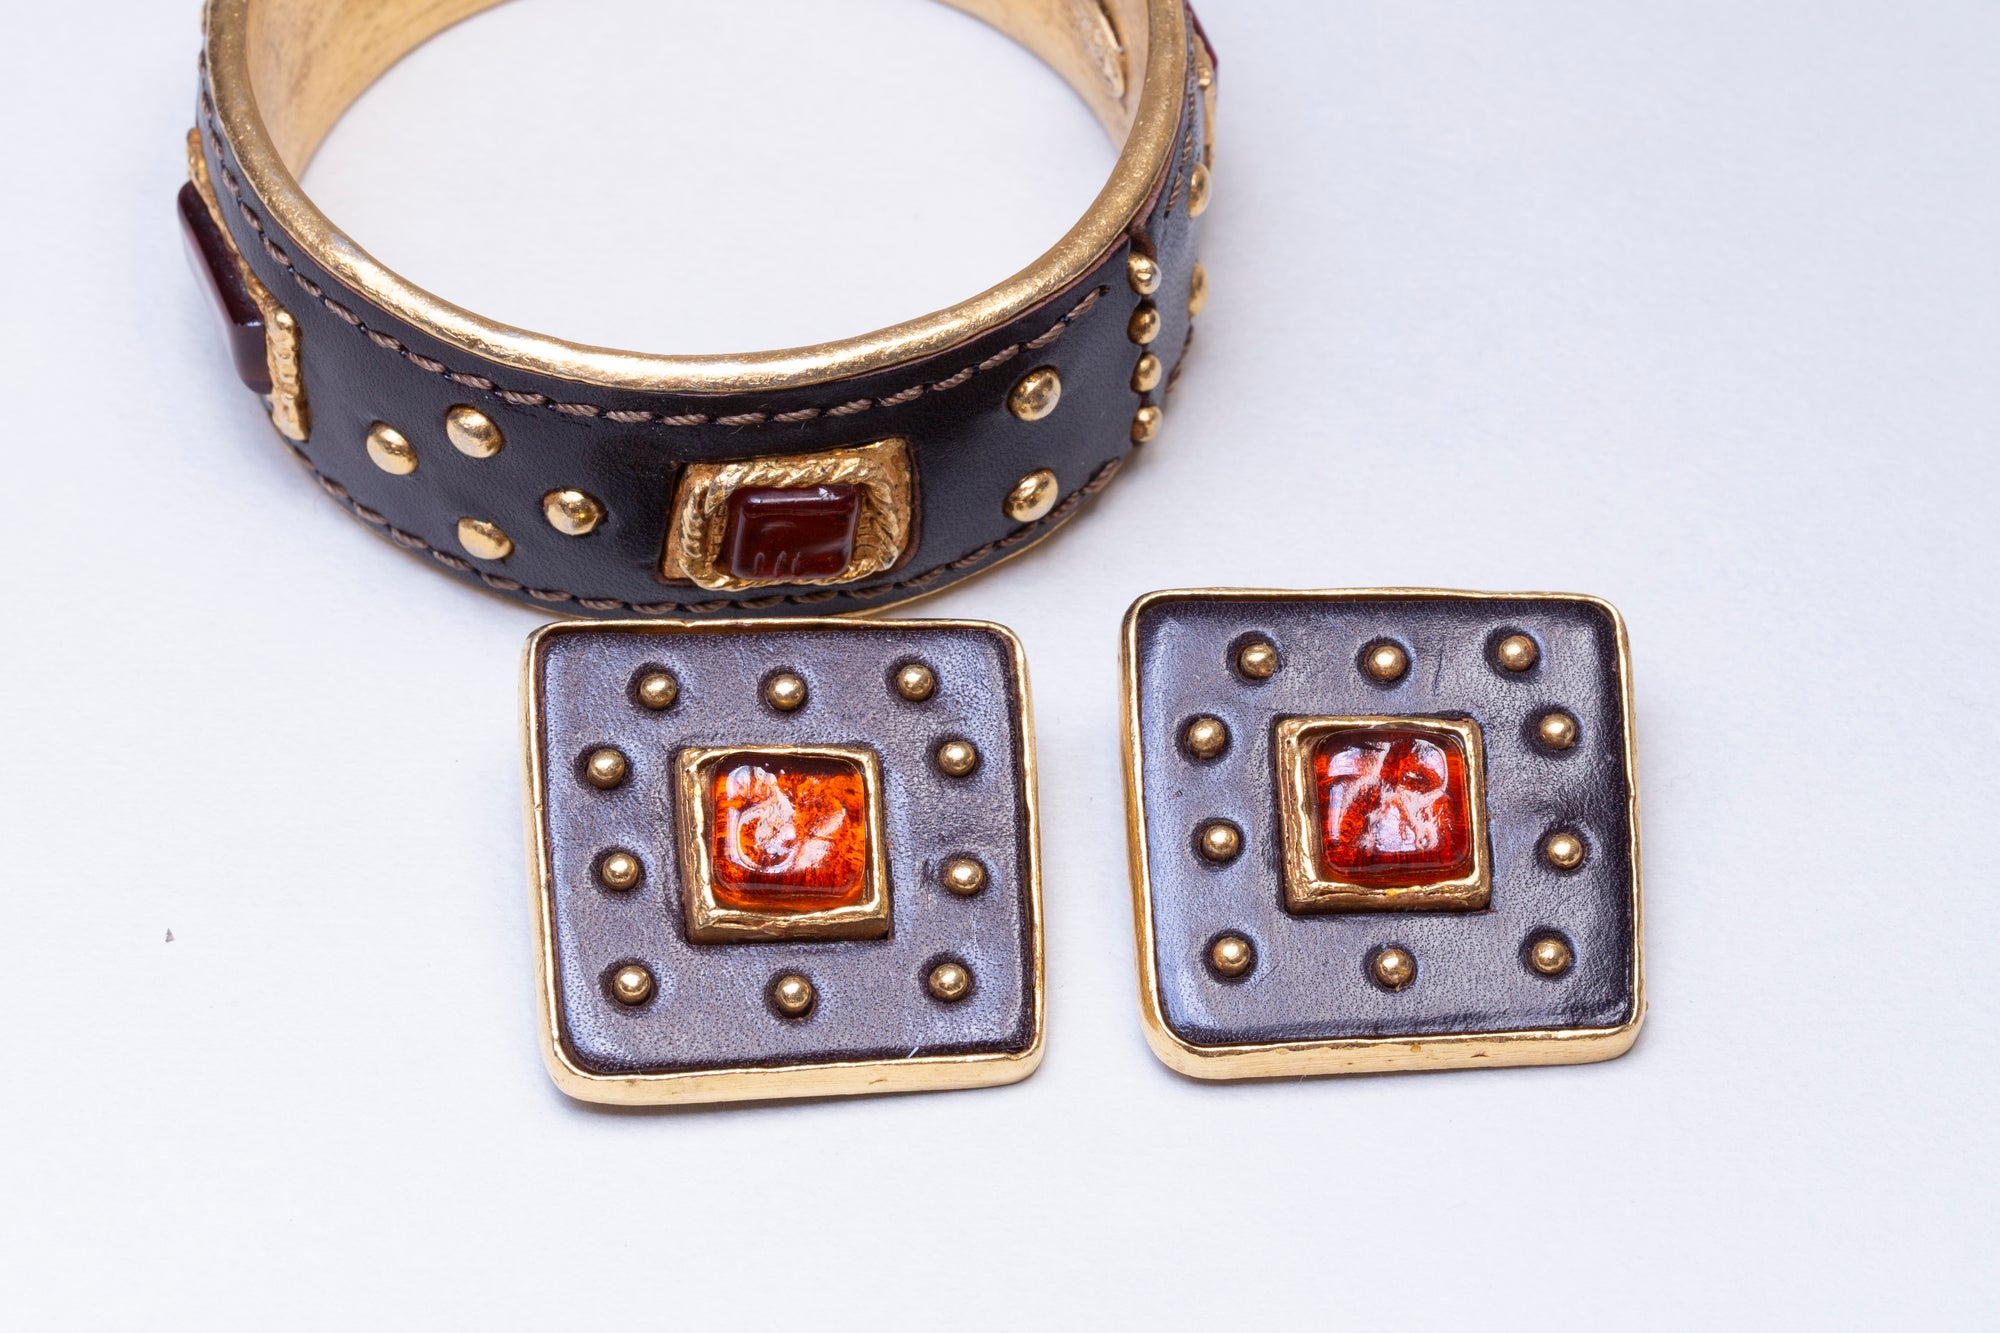 Set of Vintage Leather and Gold Cuff Bracelet and Earrings